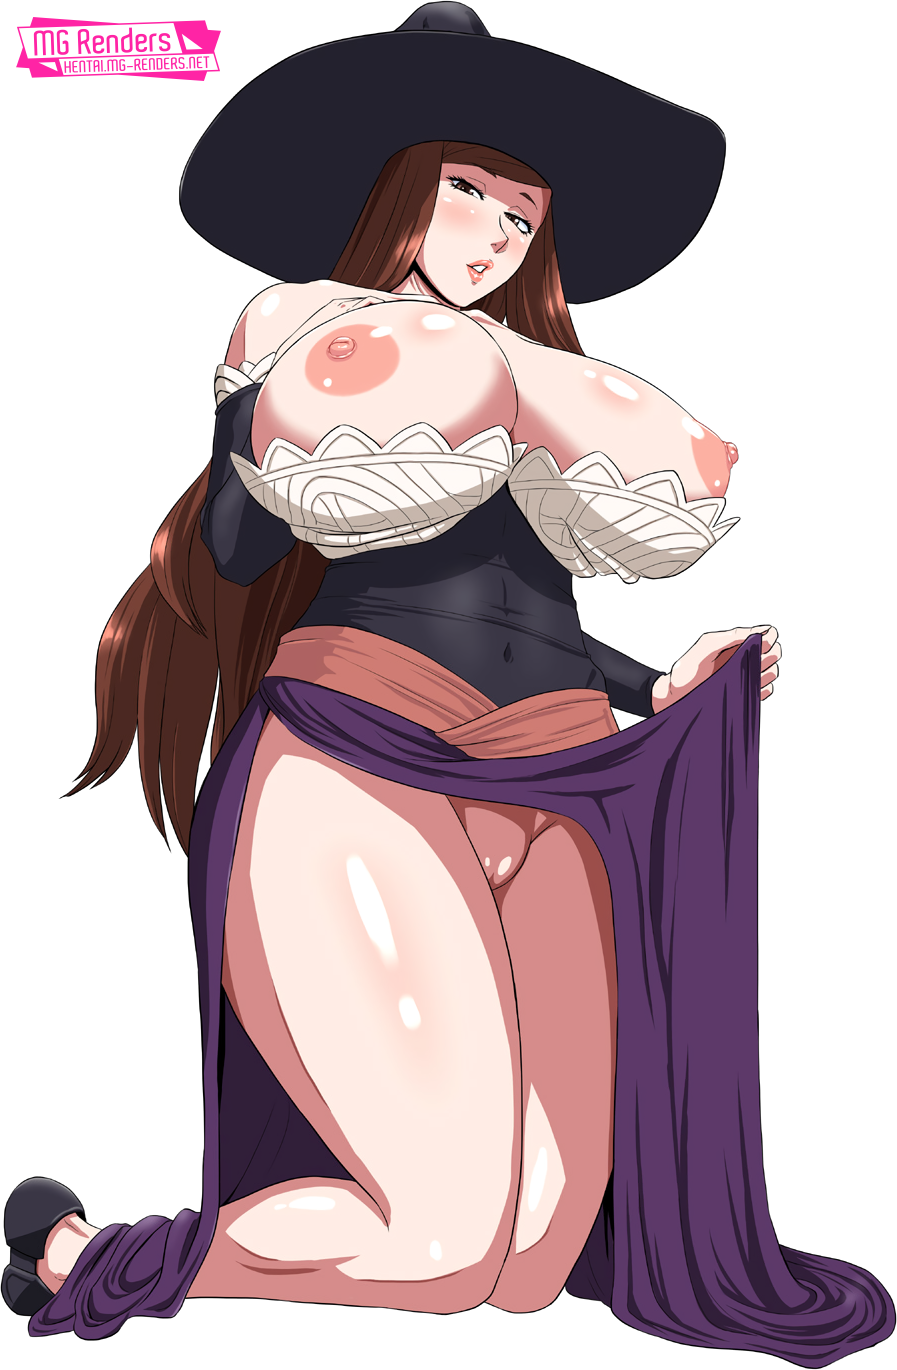 Tags: Anime, Render,  Dragons Crown,  Sorceress, PNG, Image, Picture